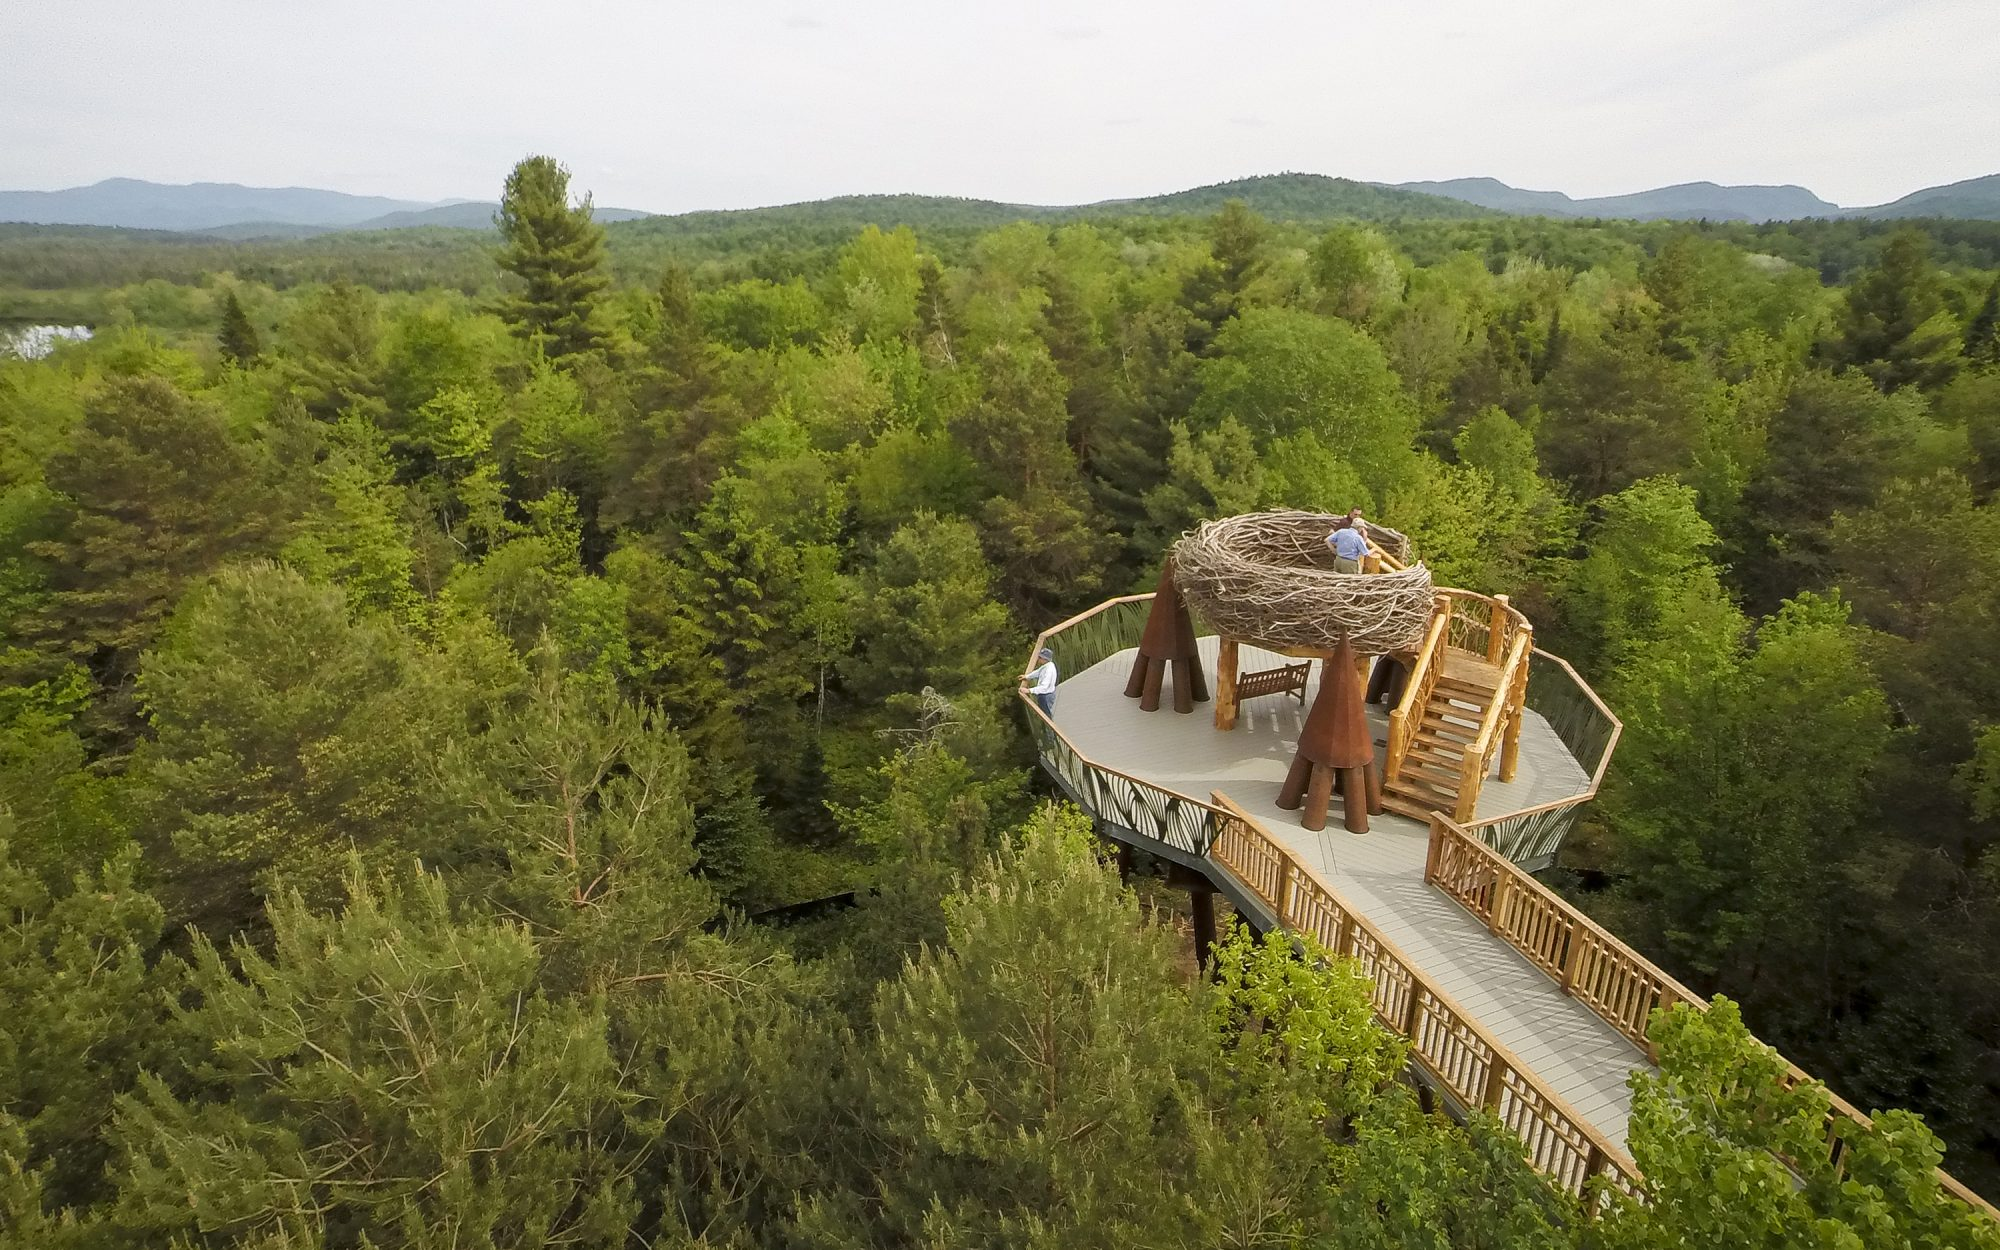 This 'wild walk' gives you a bird's eye view of the Adirondacks